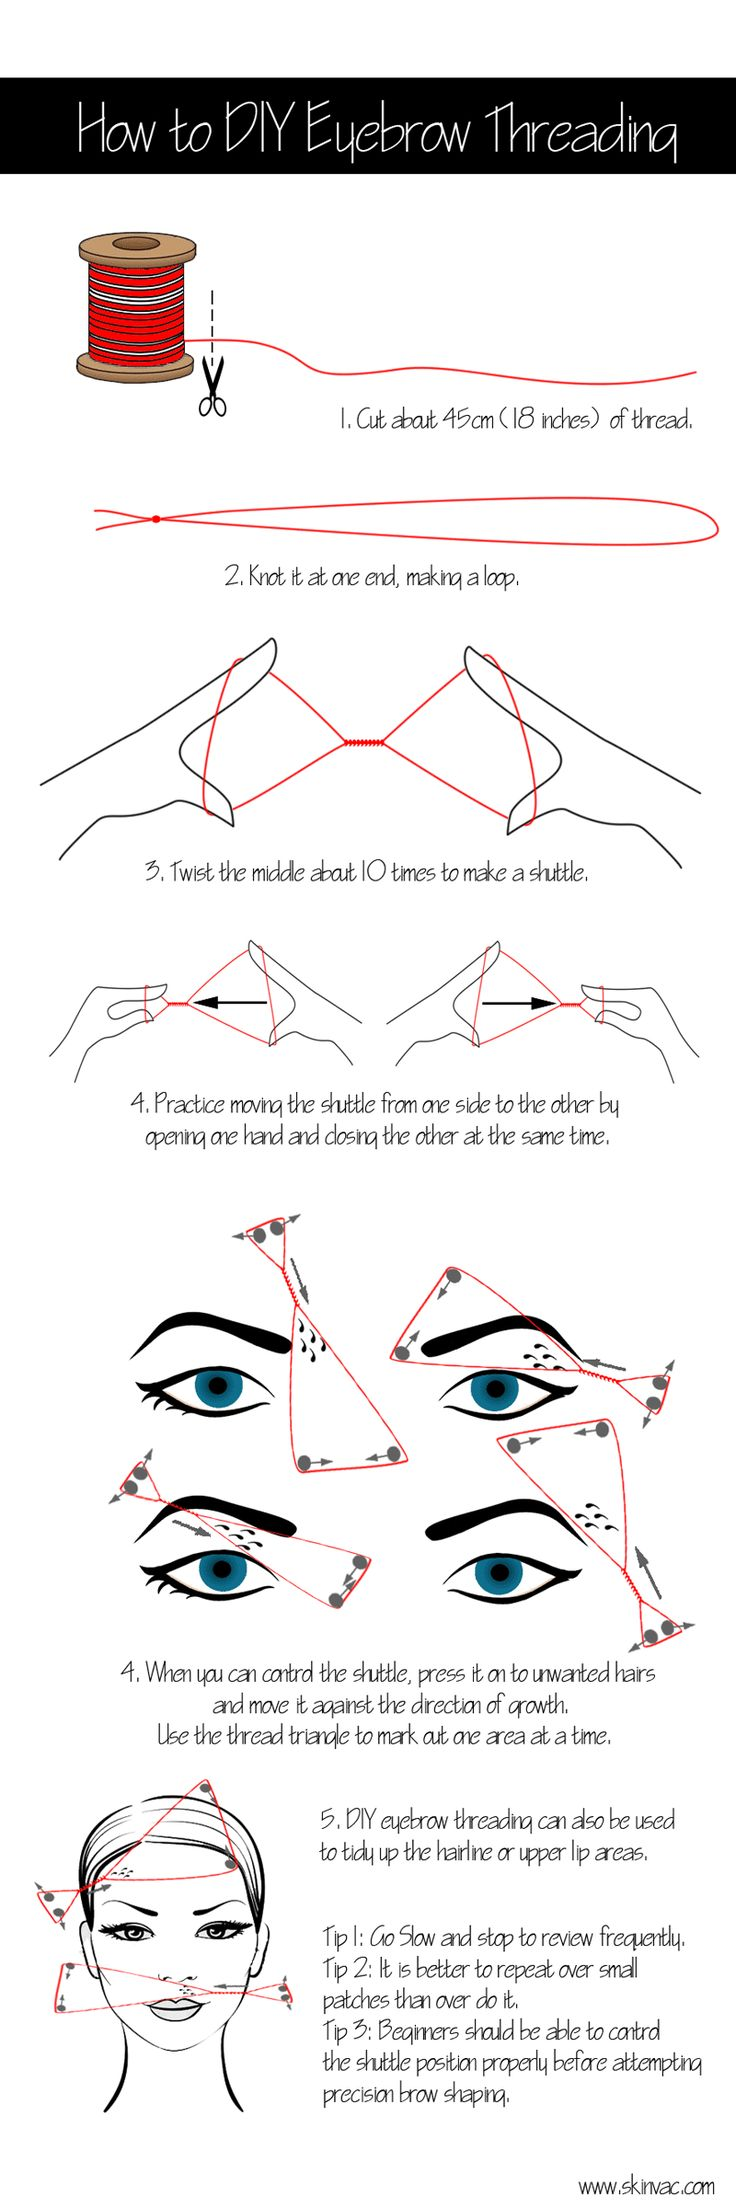 DIY threading... I had no idea what this actually was before...